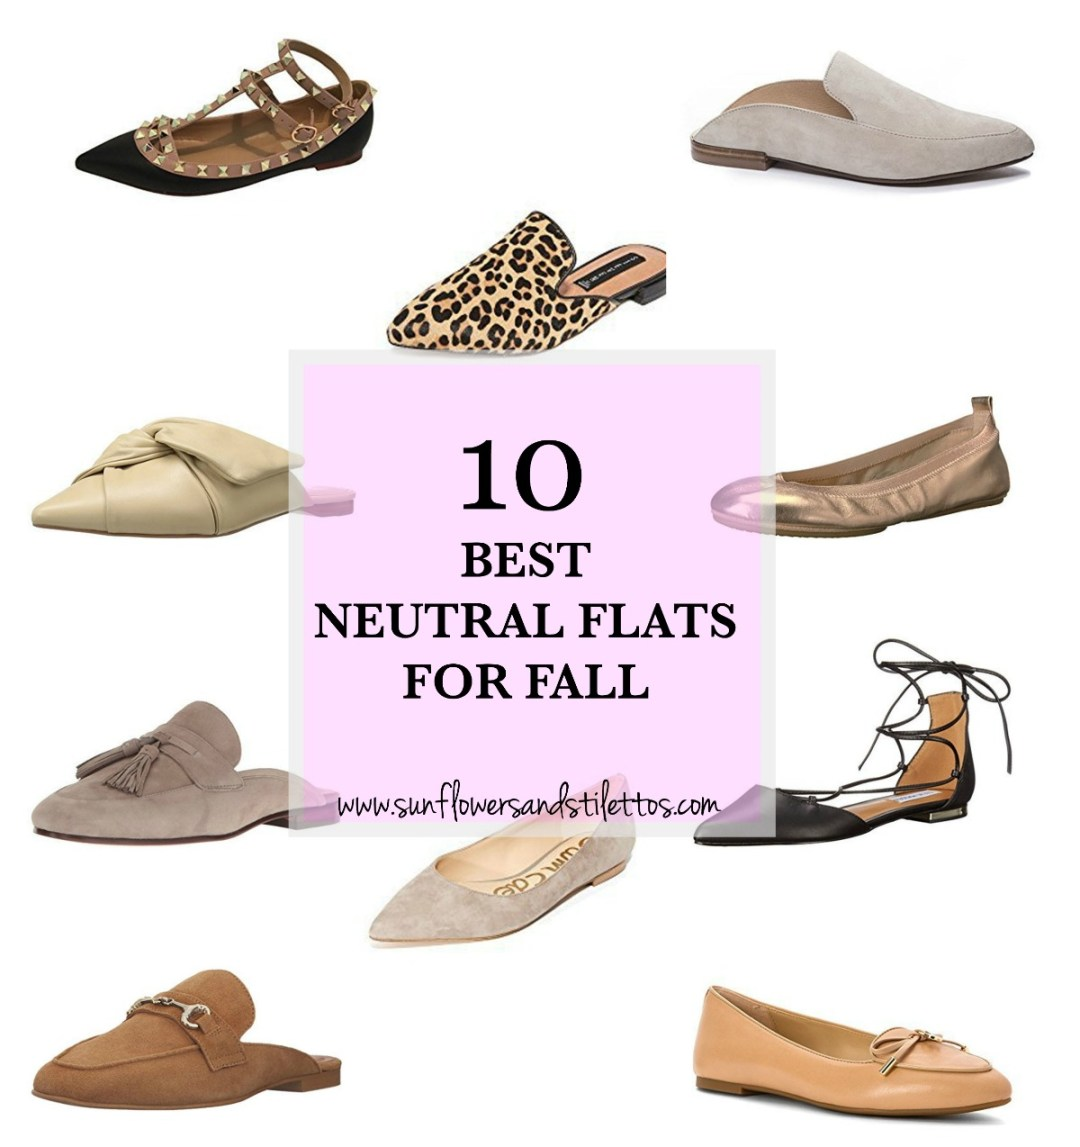 10 Best Neutral Flats for Fall